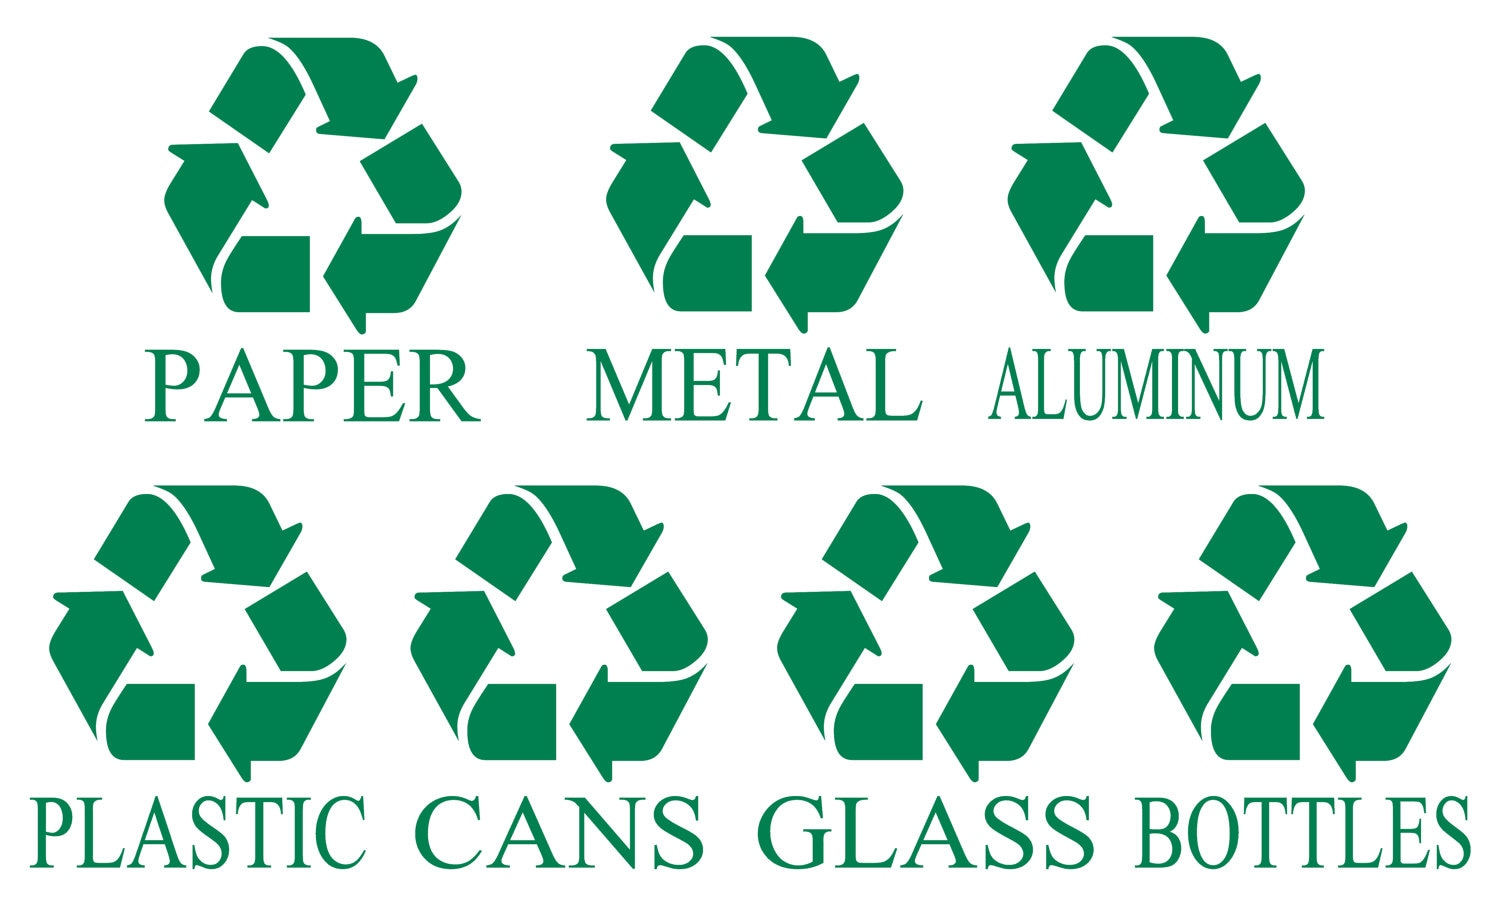 Recycle Symbol Recycle Sign Decal Recycle Sticker Trash Etsy